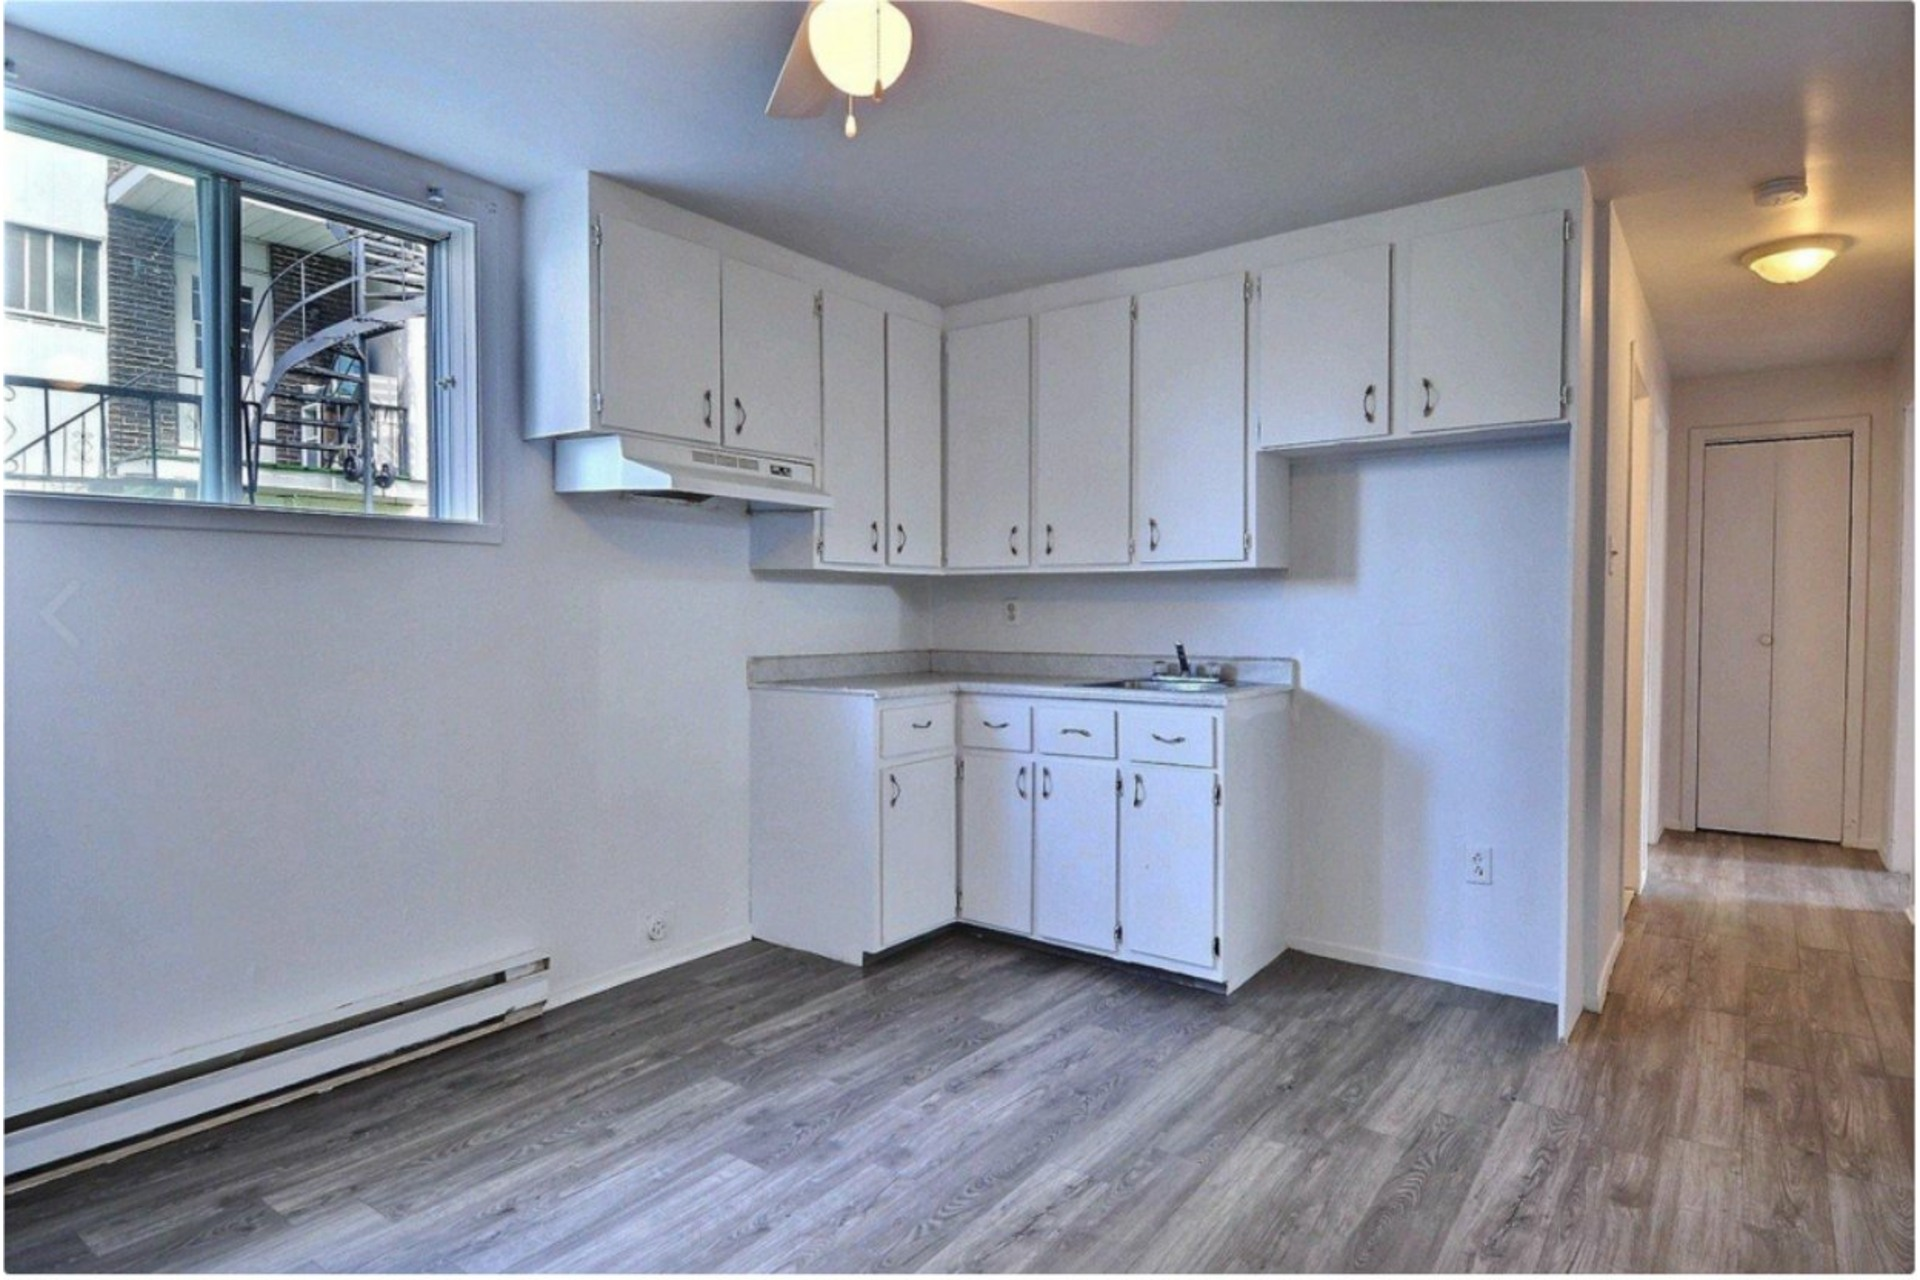 image 3 - Apartment For rent Sorel-Tracy - 5 rooms